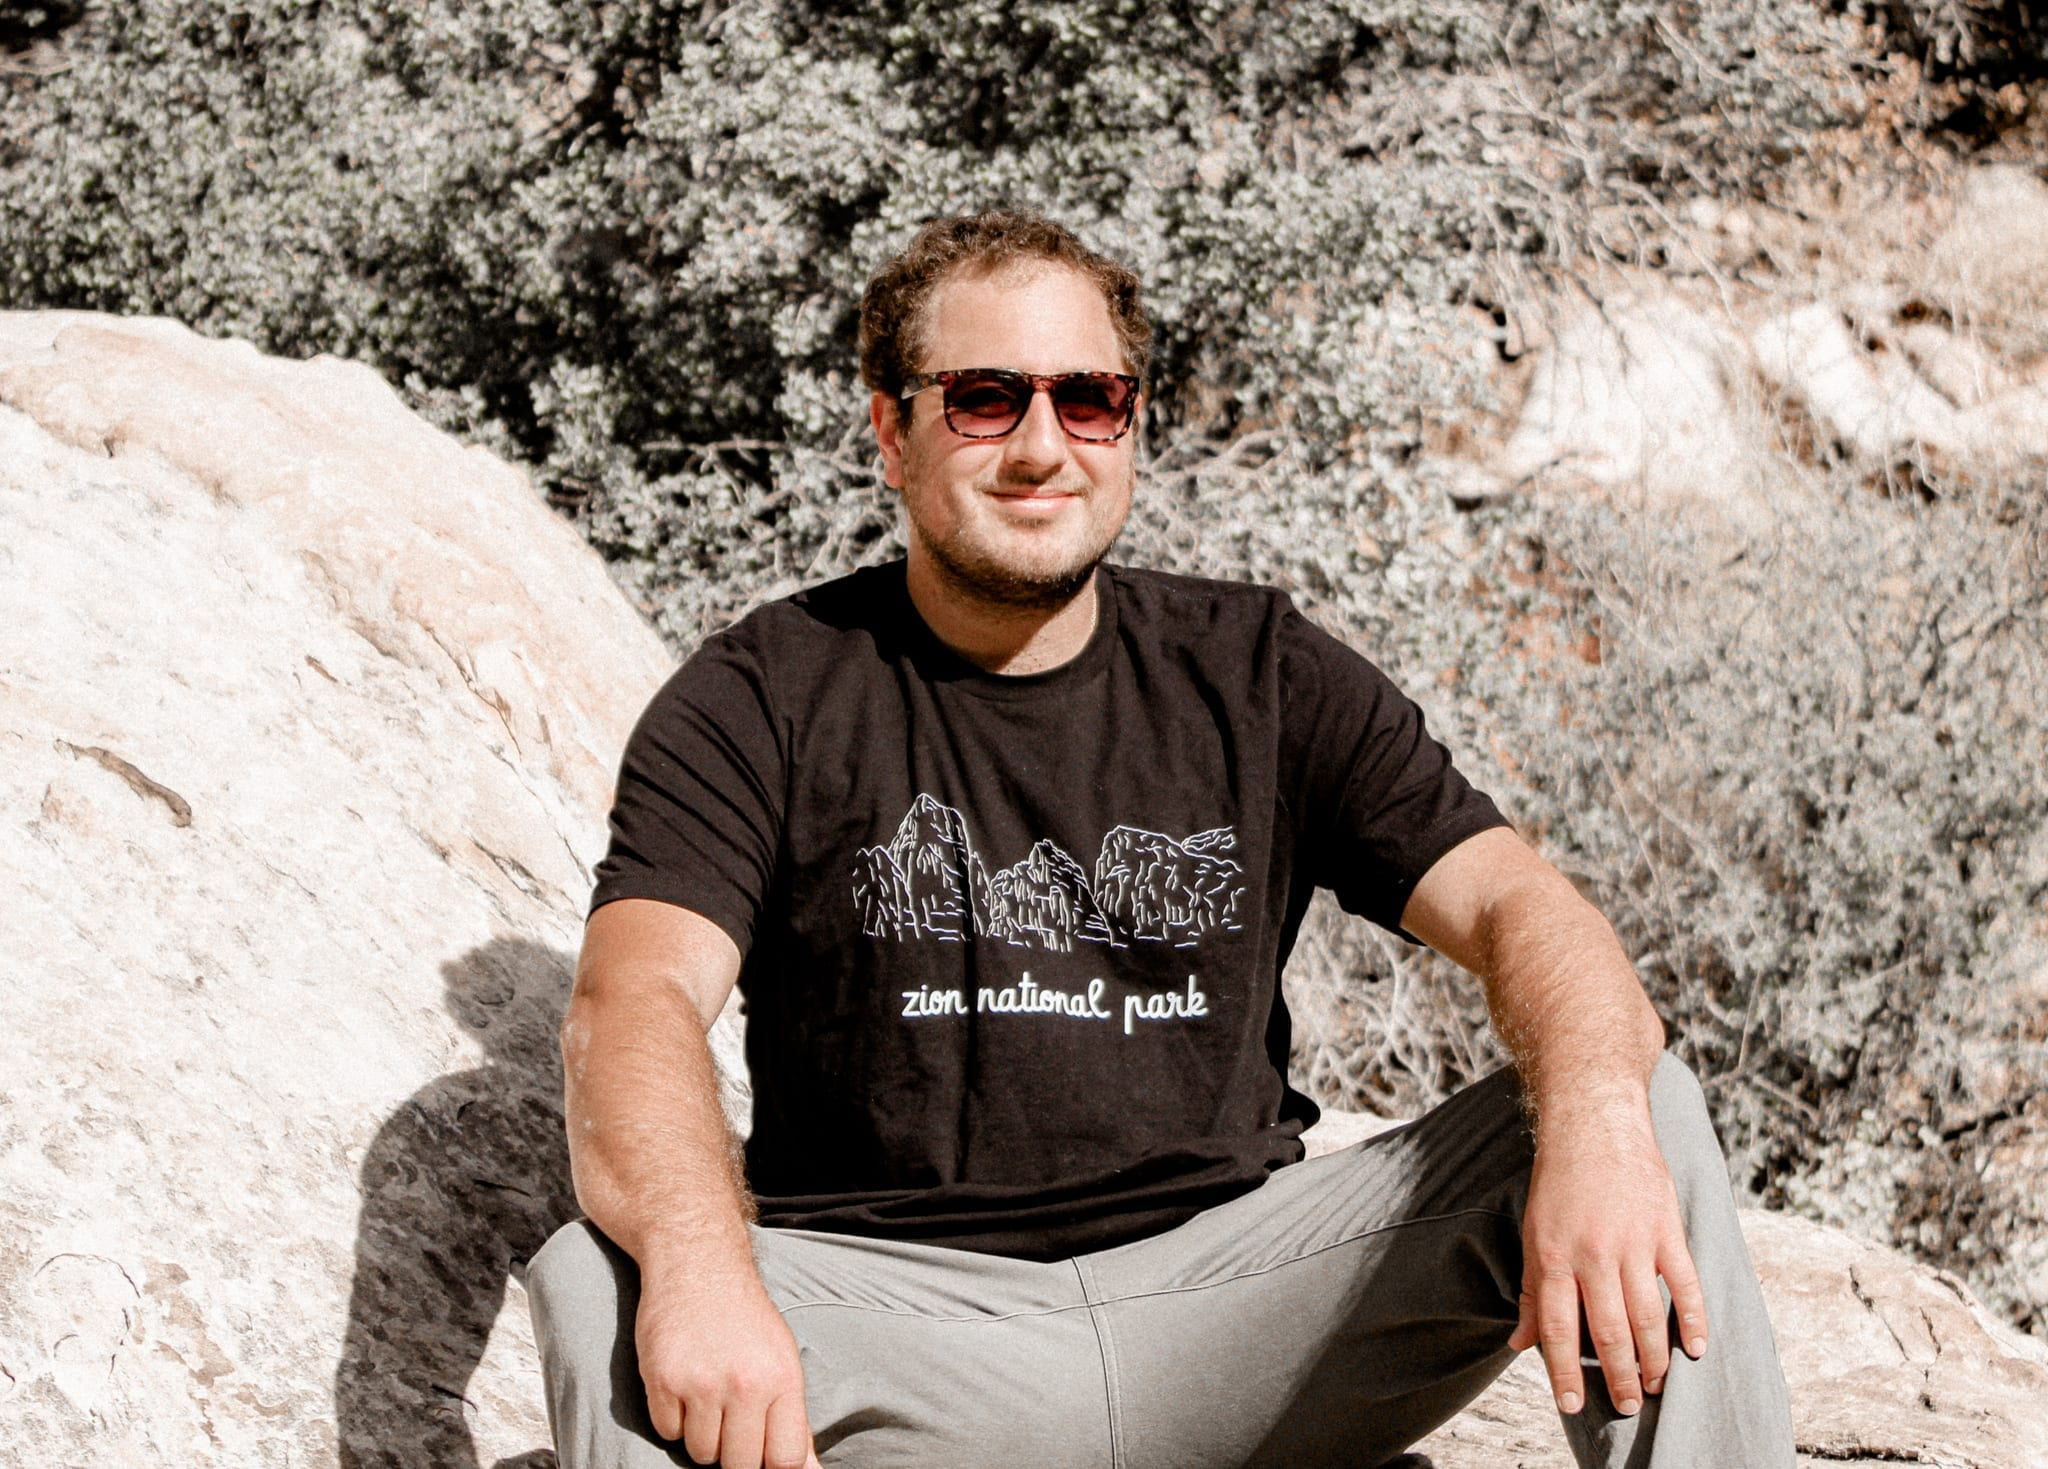 Male sitting on rock with zion national park black t-shirt